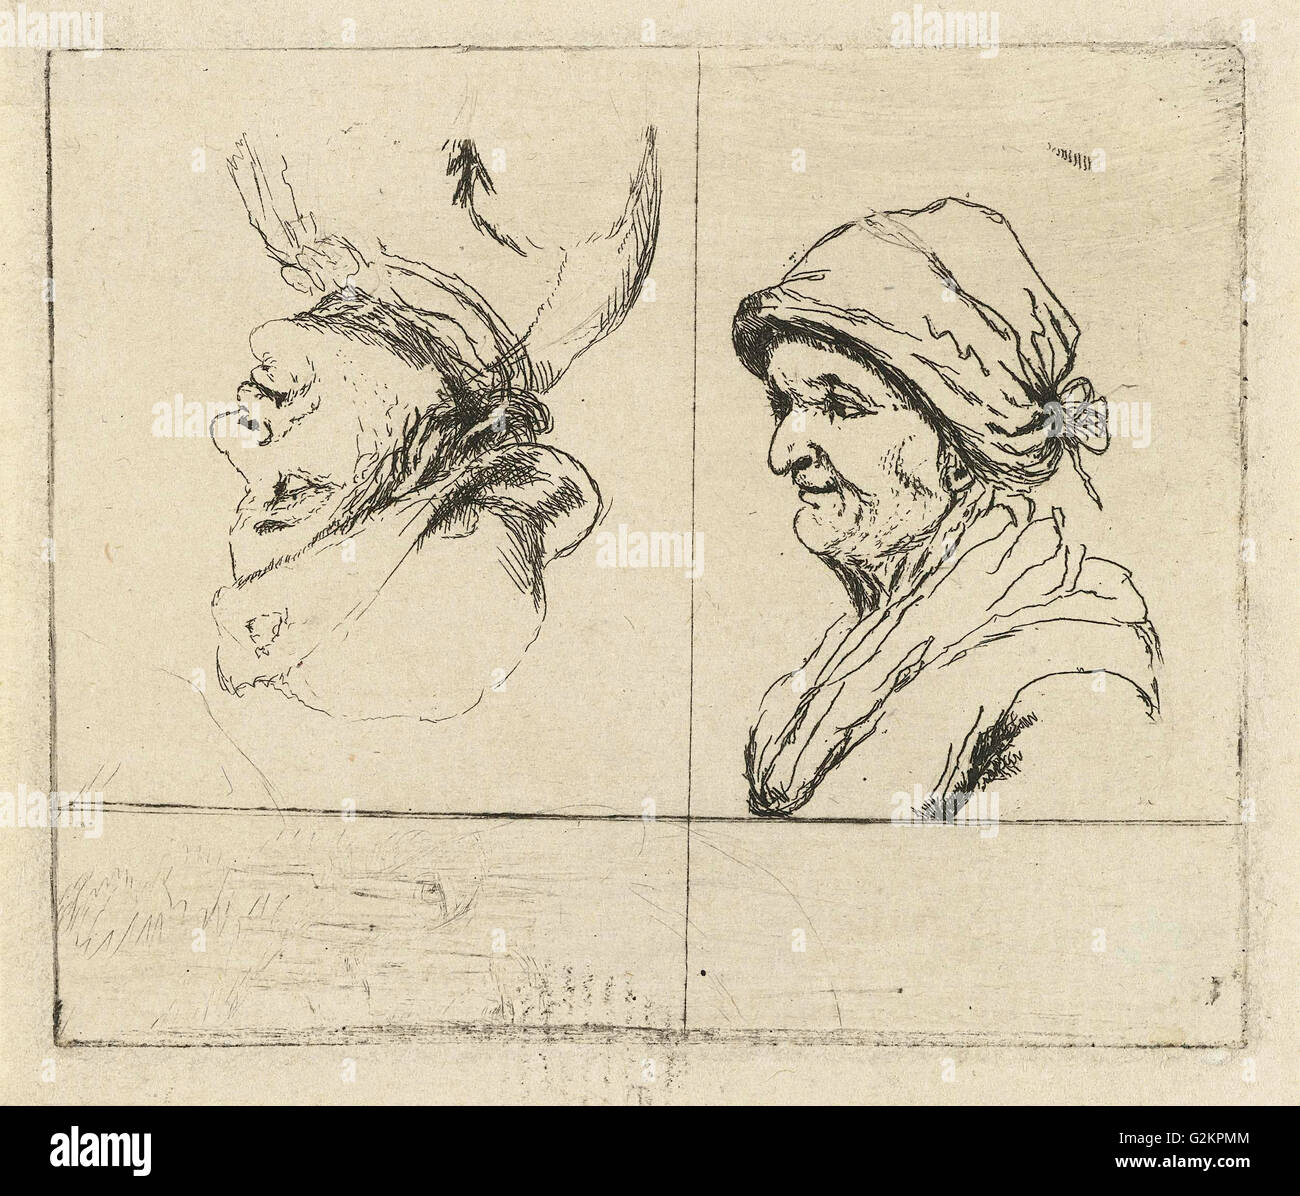 Study Sheet with two portrait busts, Marie Lambertine Coclers, 1776 - 1815 - Stock Image